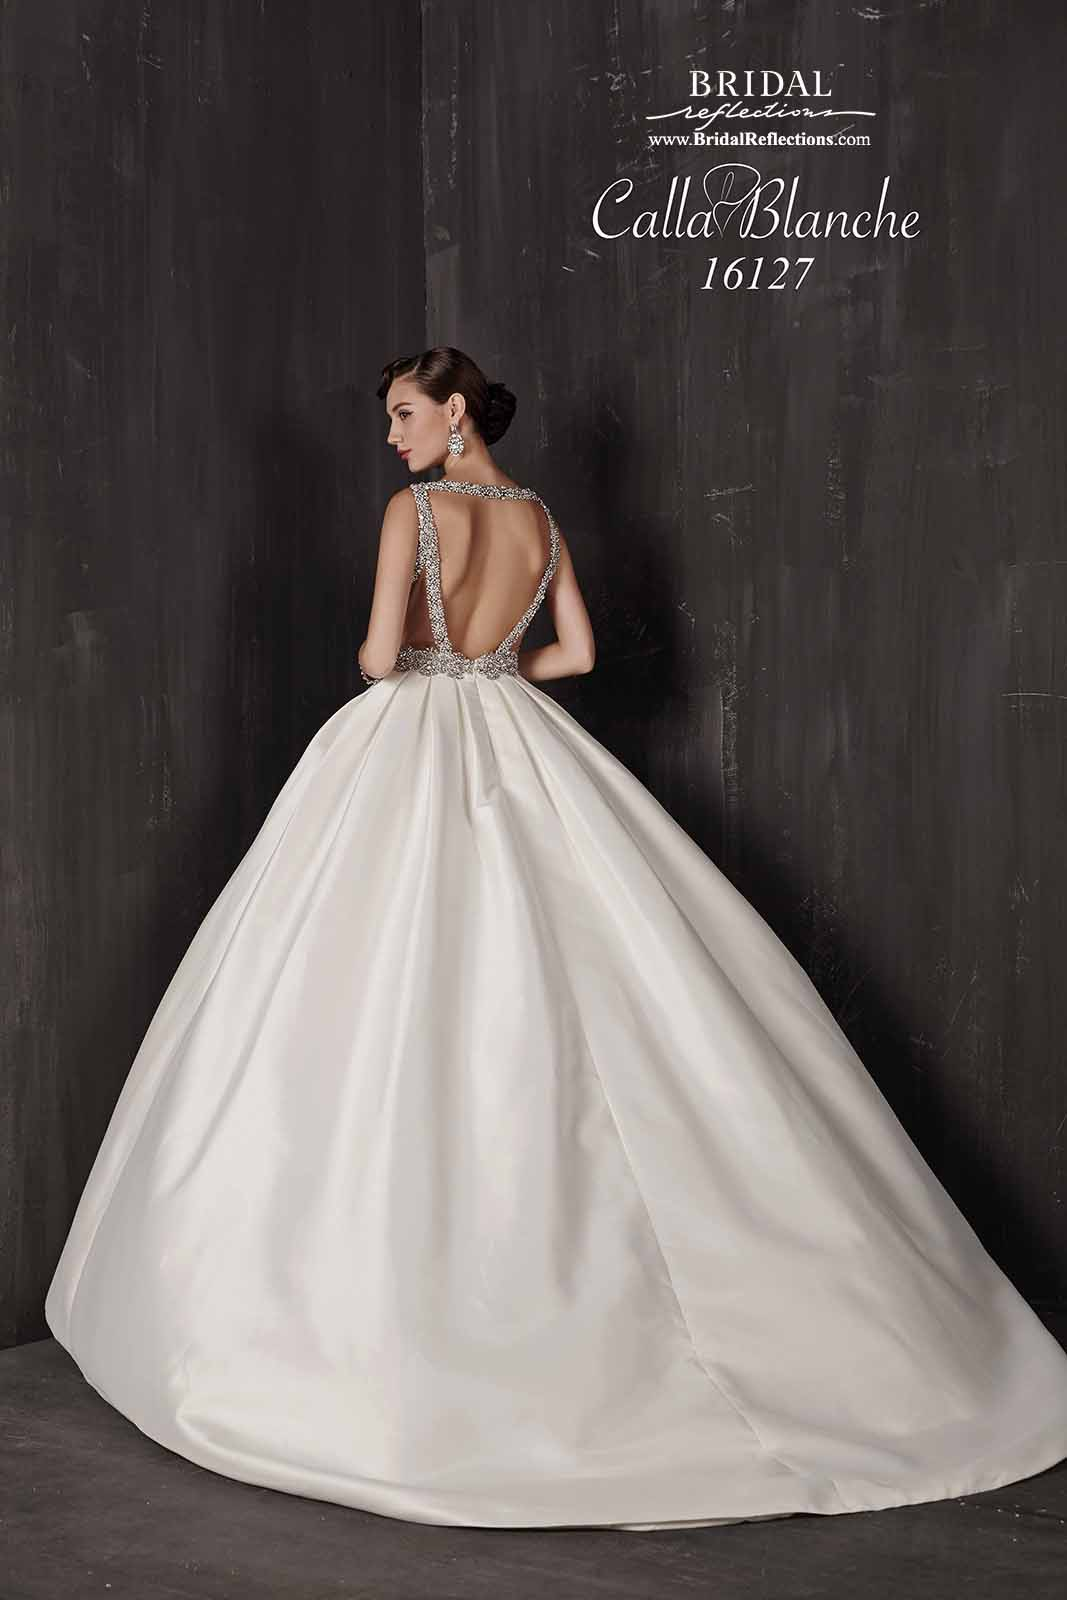 Calla Blanche Wedding Dress Collection   Bridal Reflections Traditional Wedding Vows